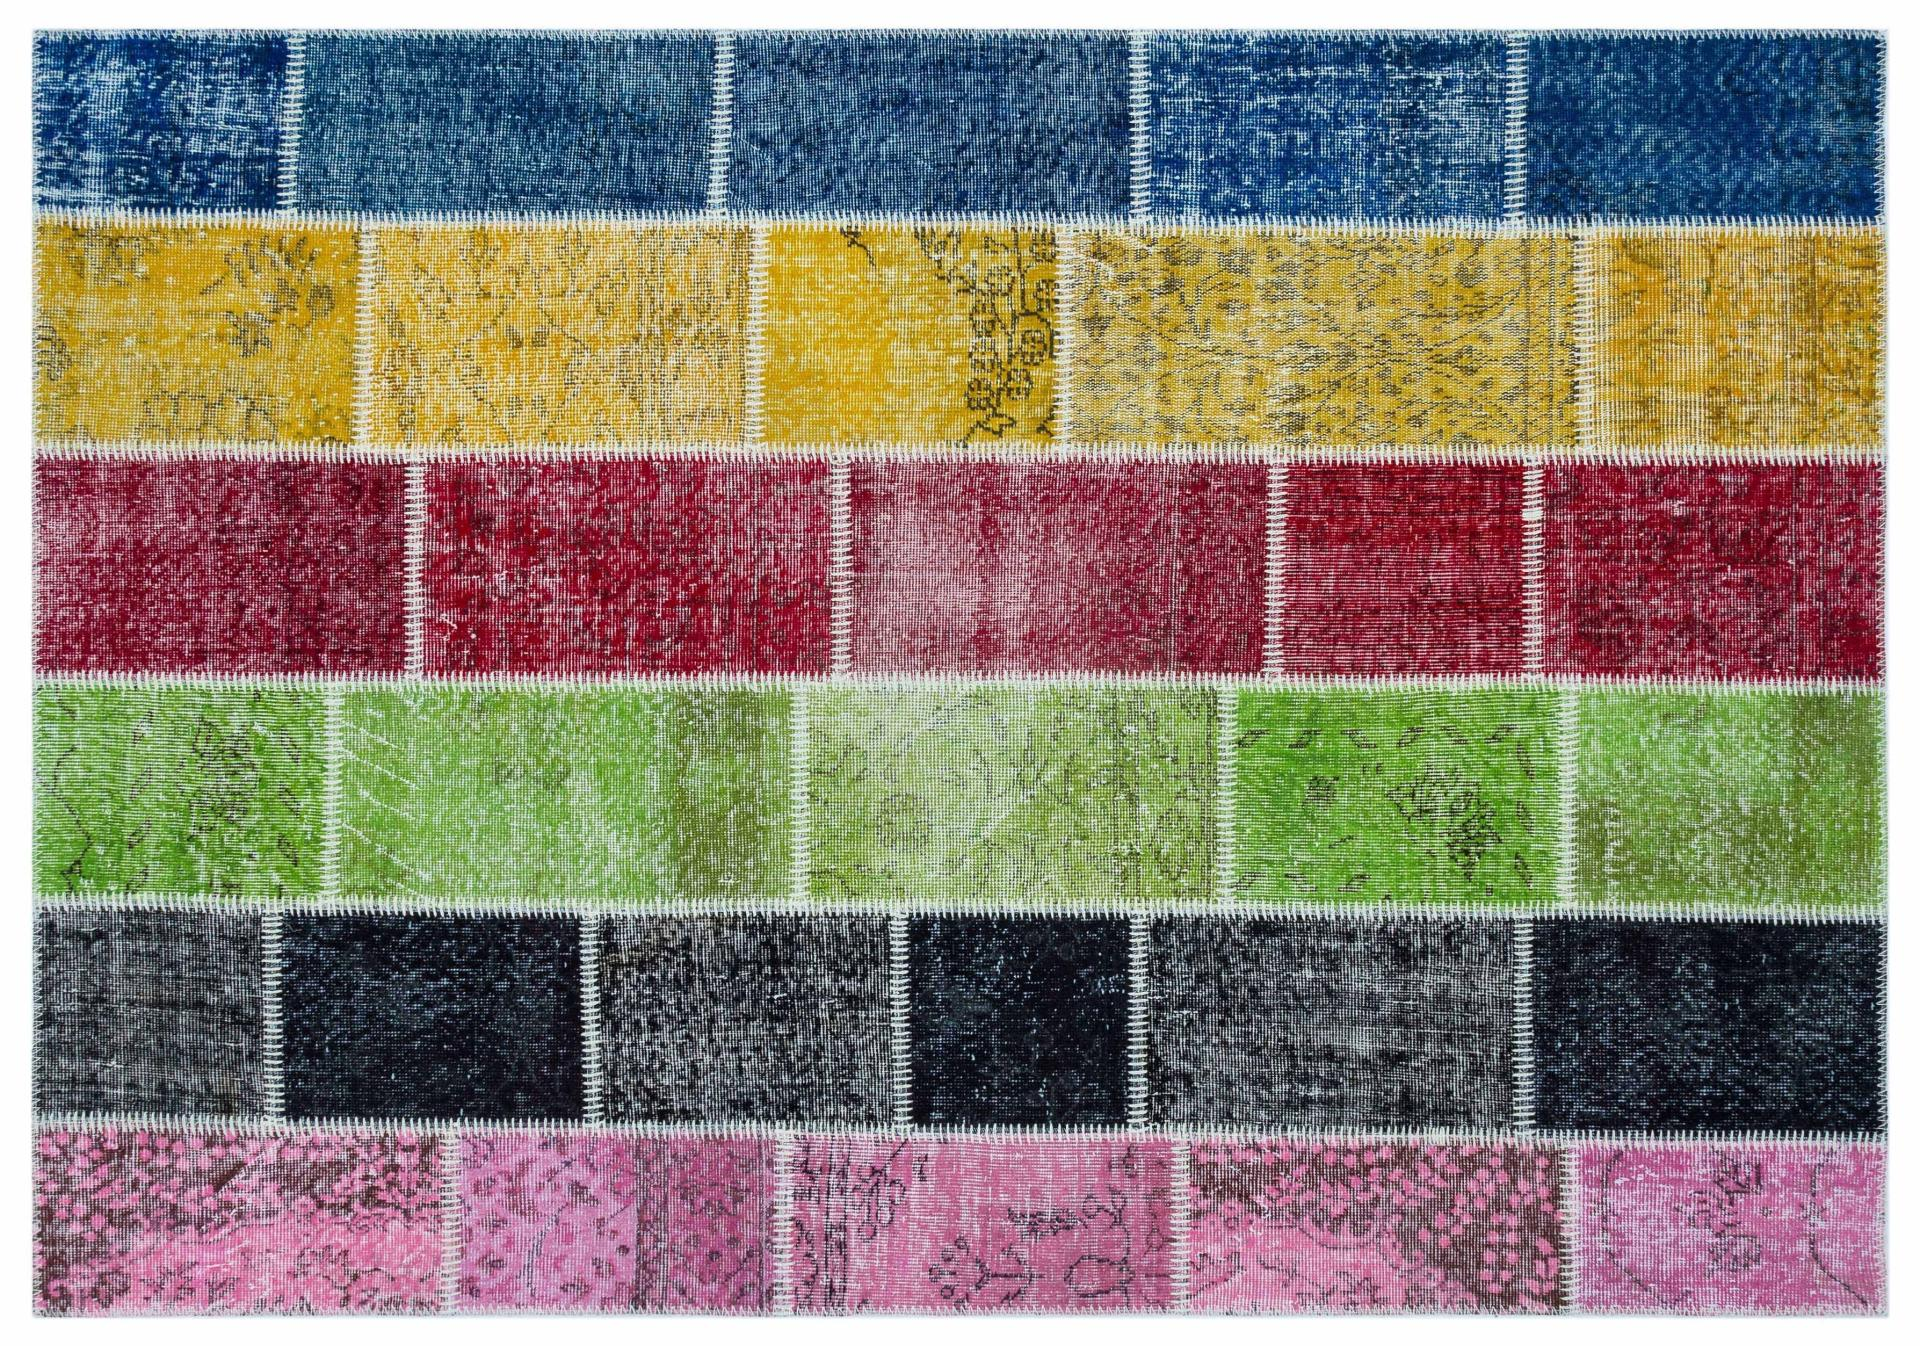 Covor Tesut Manual Patchwork 4013 - 160x230 cm